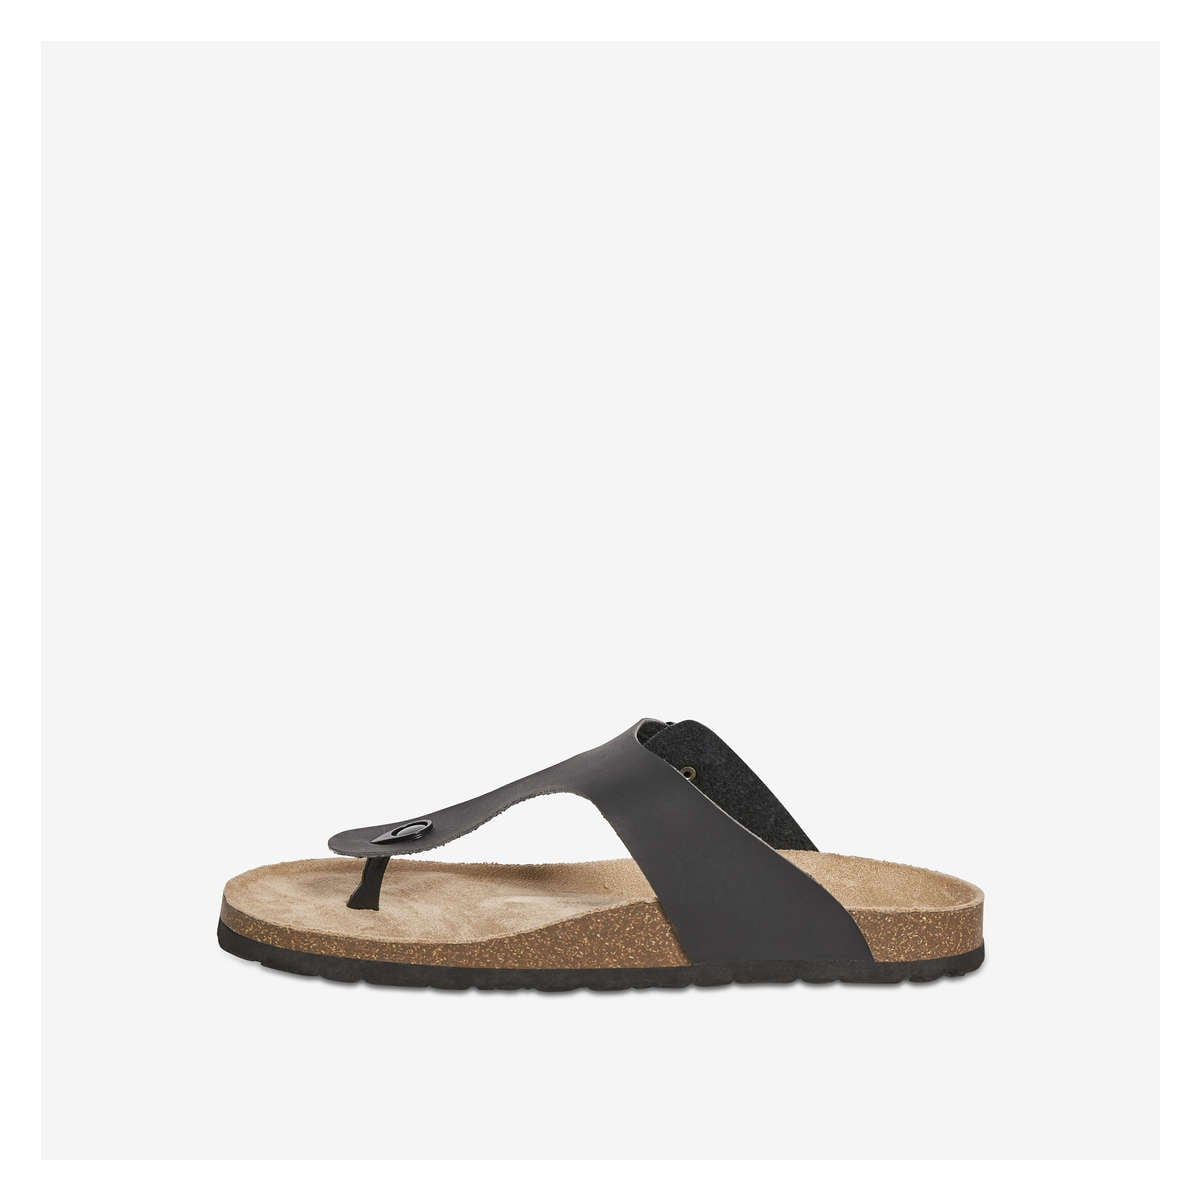 c655e930d680 Footbed Thong Sandals in Black from Joe Fresh